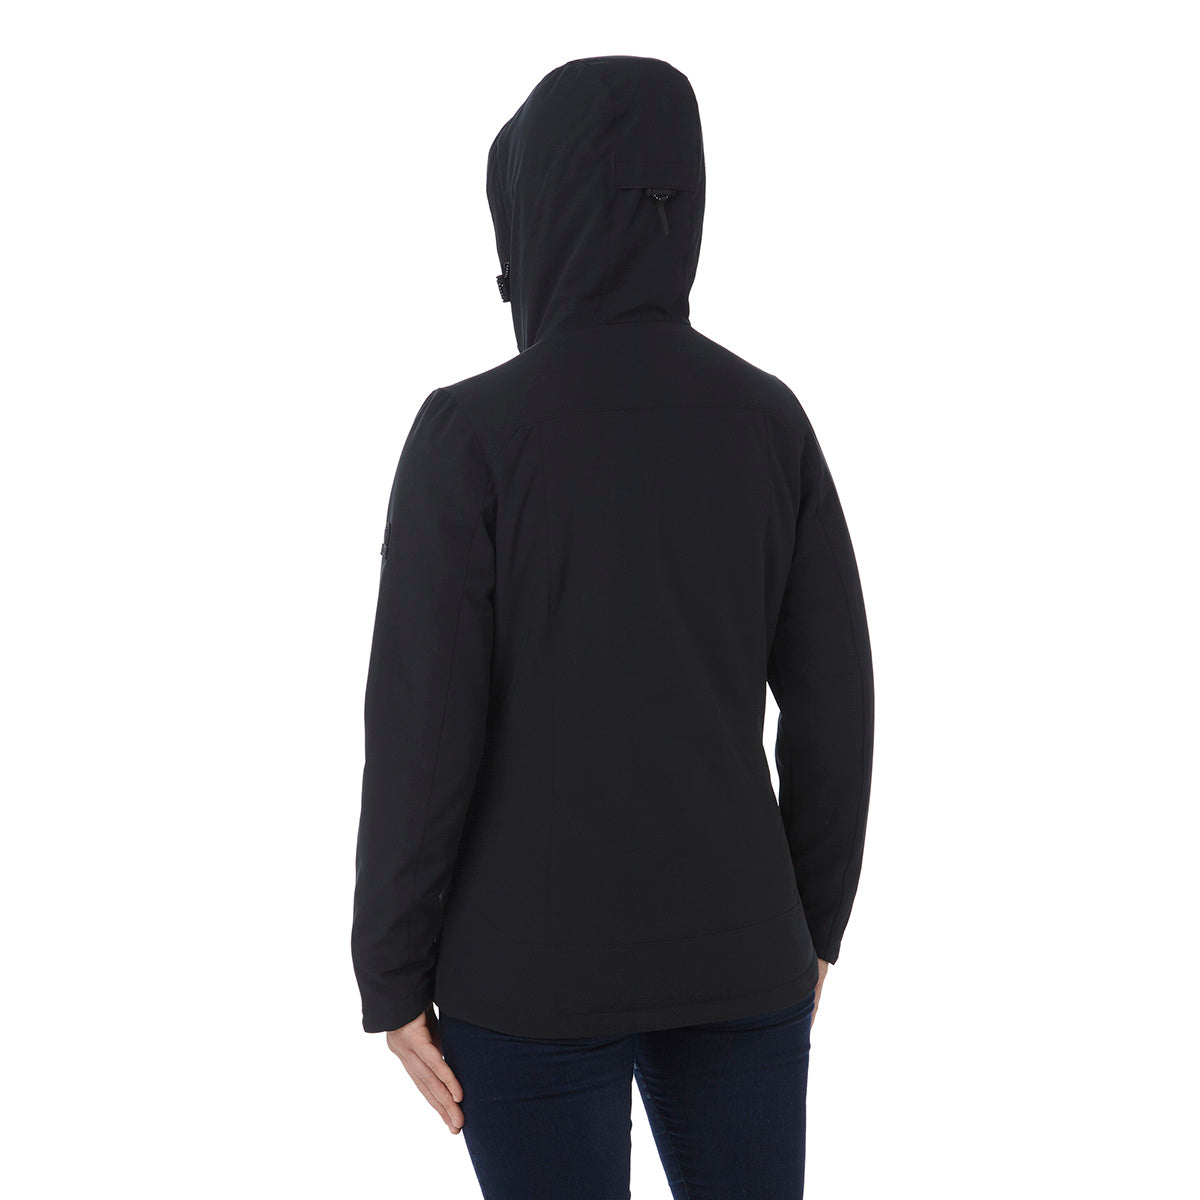 Alexis Womens TCZ Thermal Hooded Jacket - Black image 4